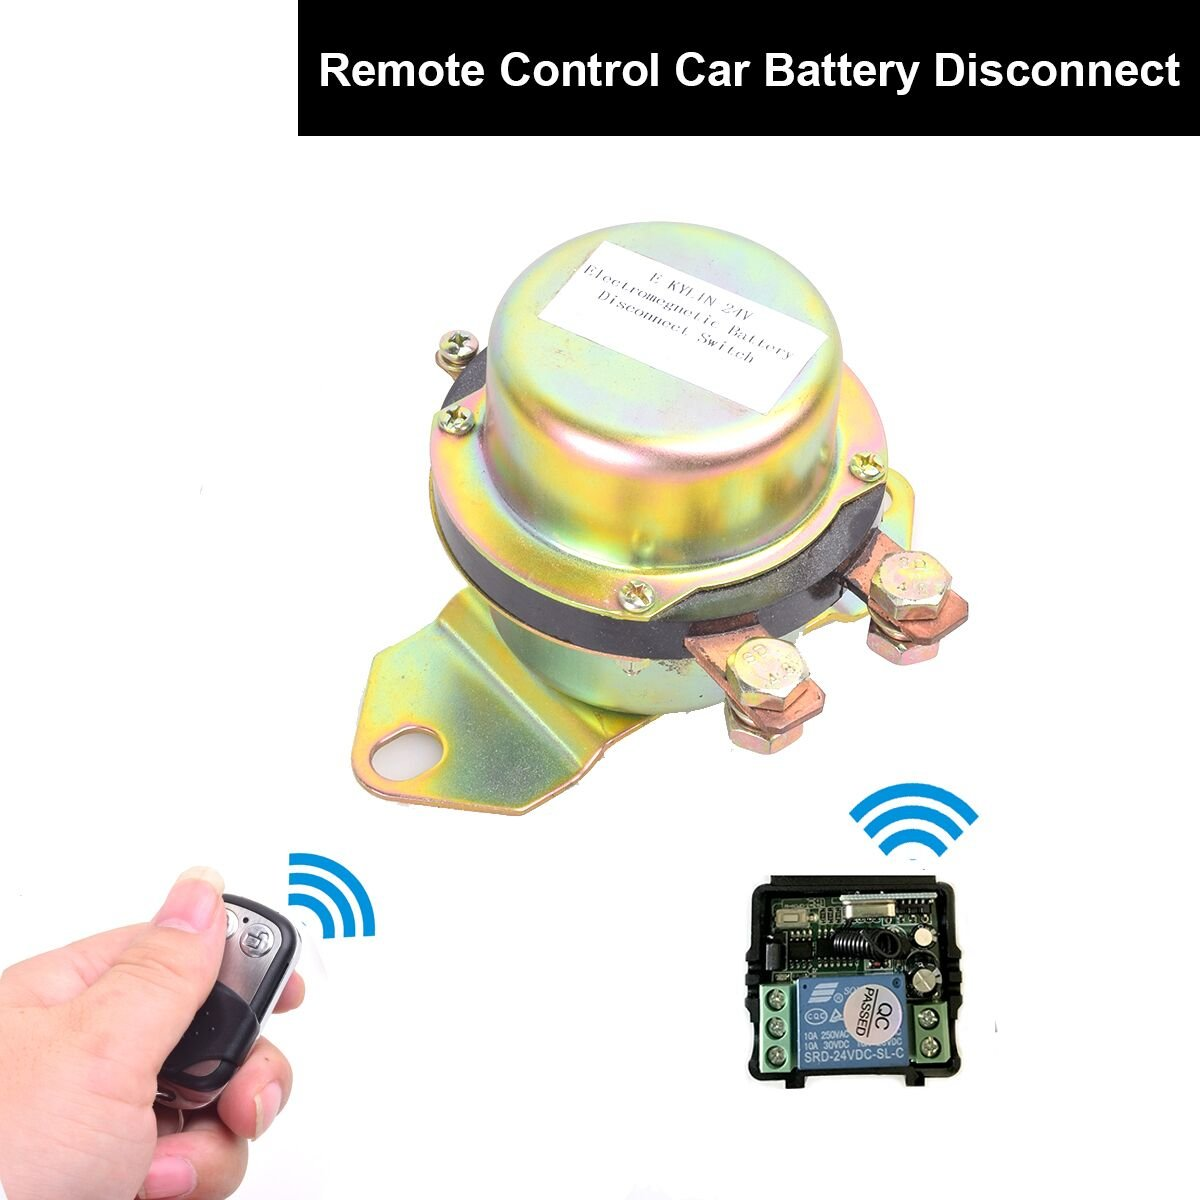 Car Wireless Remote Control Battery Switch Disconnect Latching Relay Anti-theft, EKYLIN DC 24V Electromagnetic Solenoid Valve Terminal Master Kill System